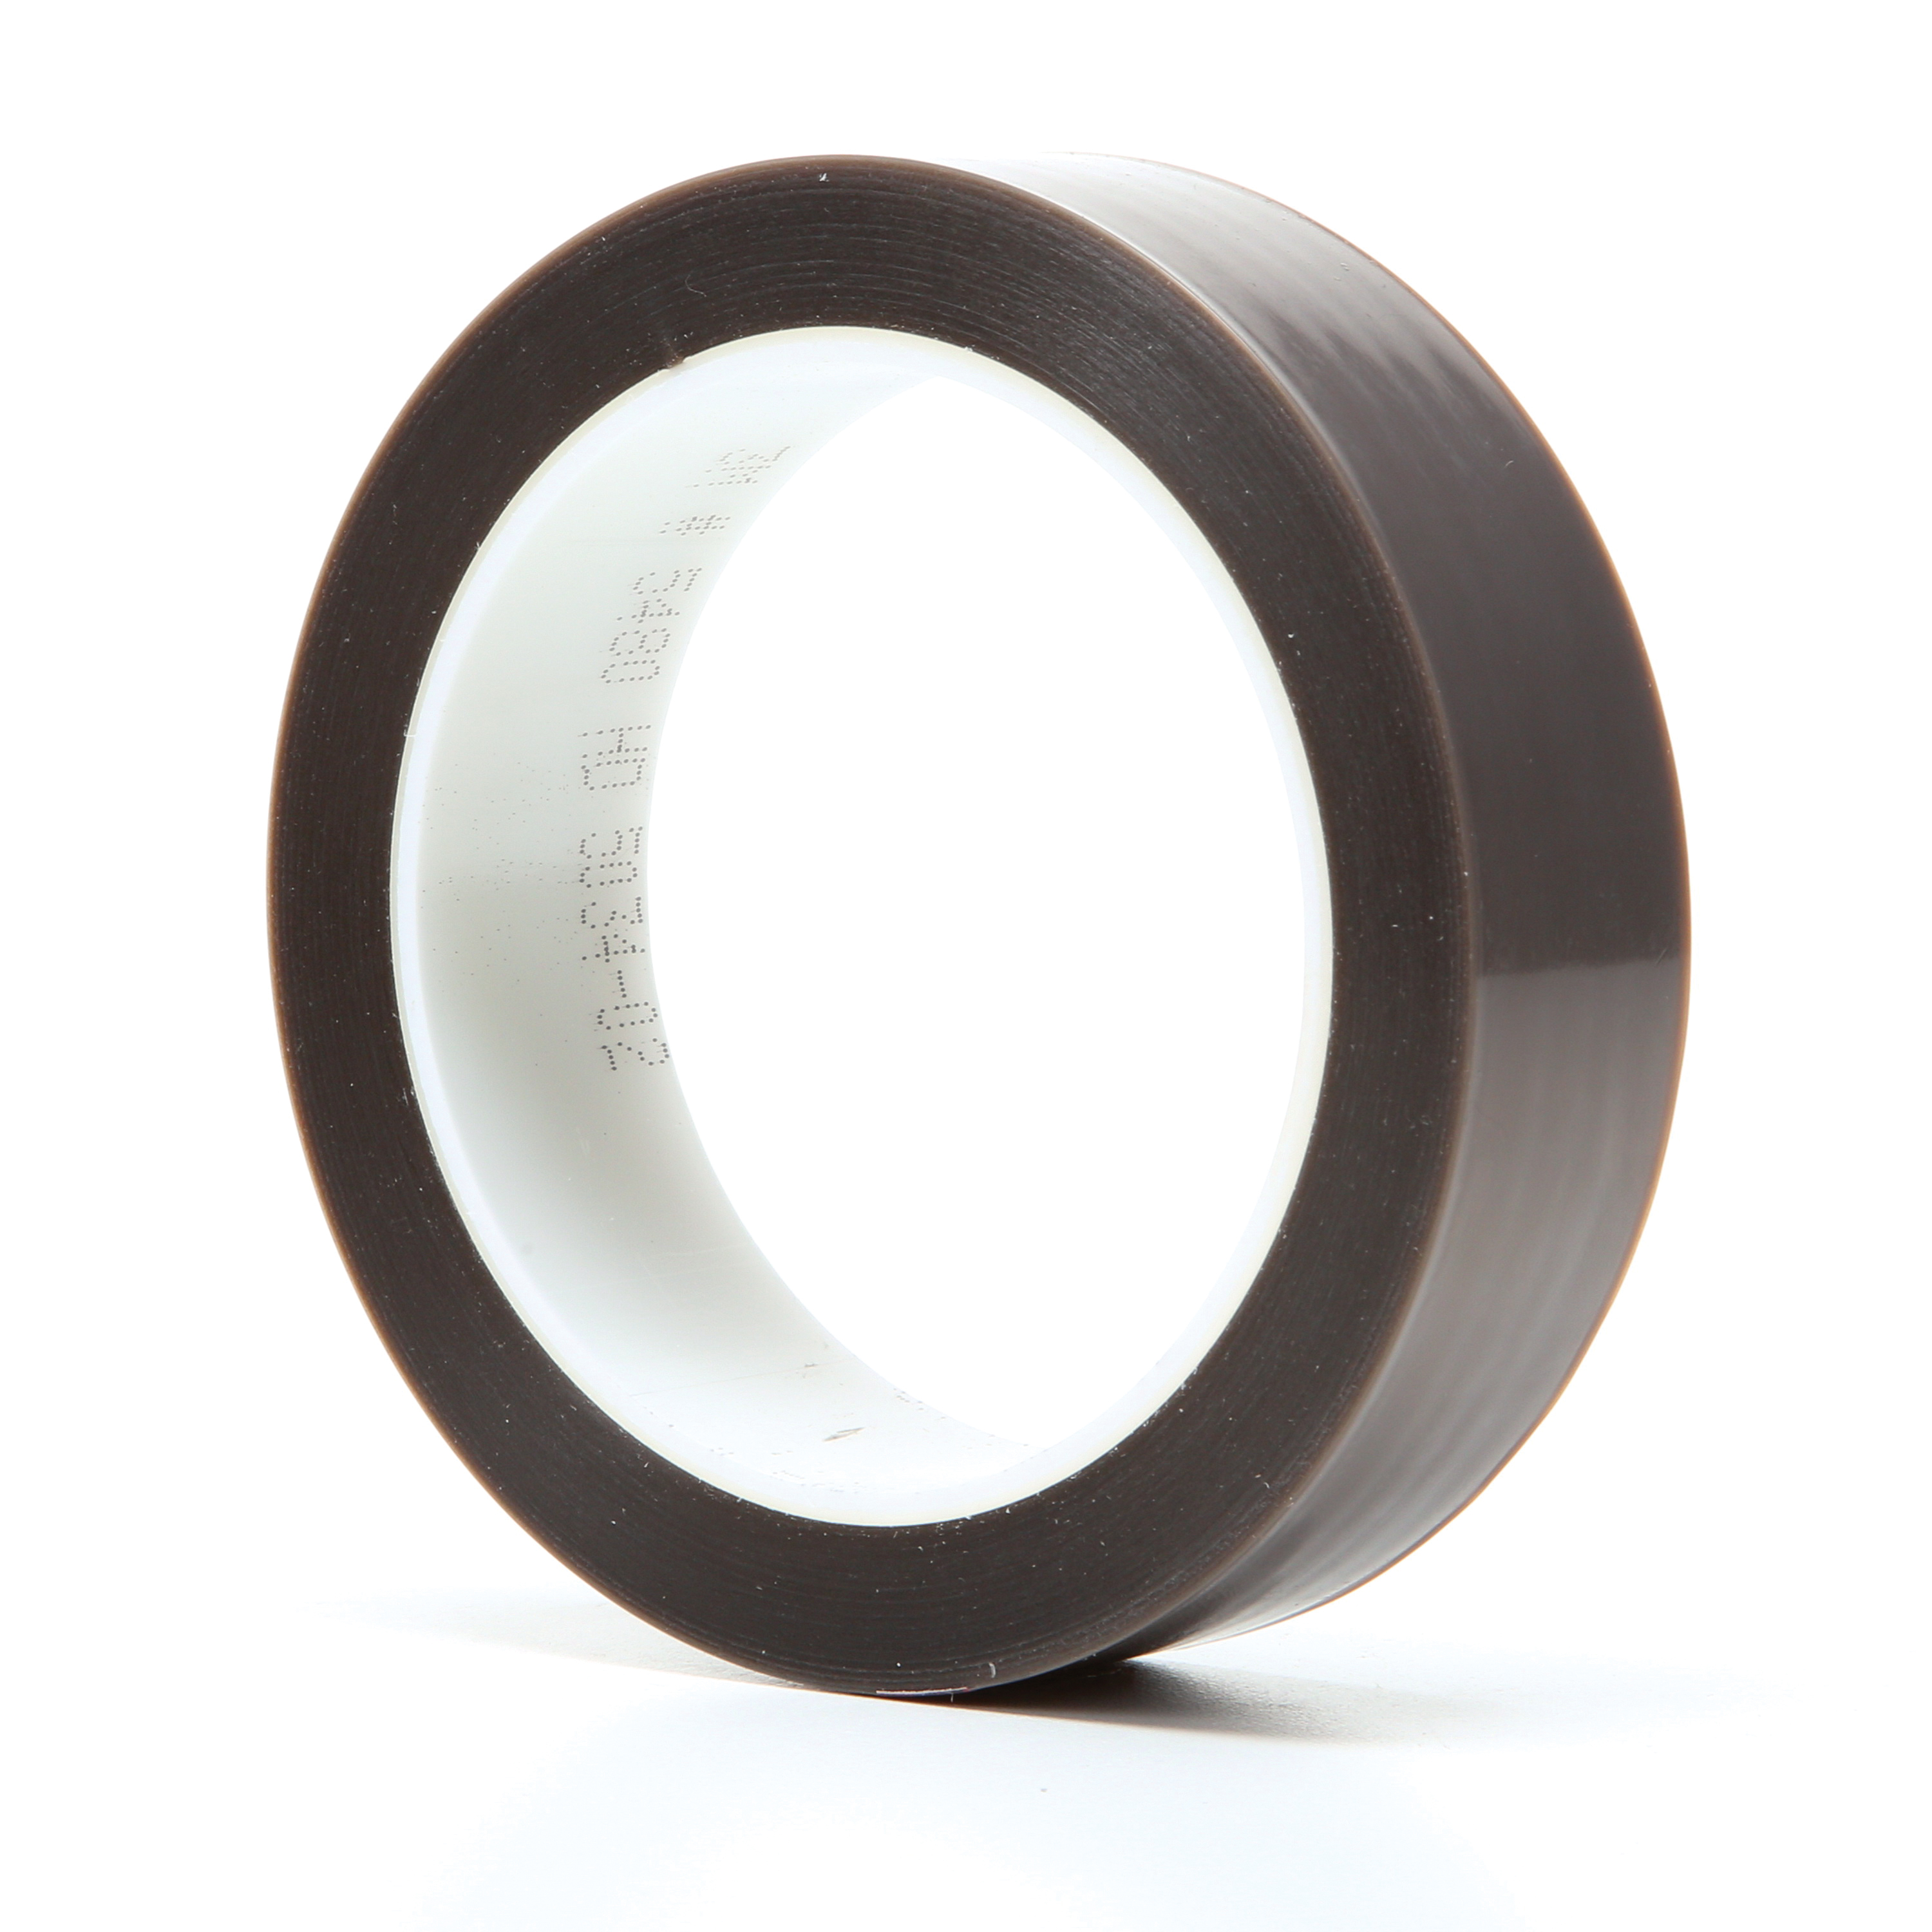 3M™ 021200-16166 Film Tape, 36 yd L x 1 in W, 3.7 mil THK, Silicon Adhesive, Skived PTFE Backing, Gray